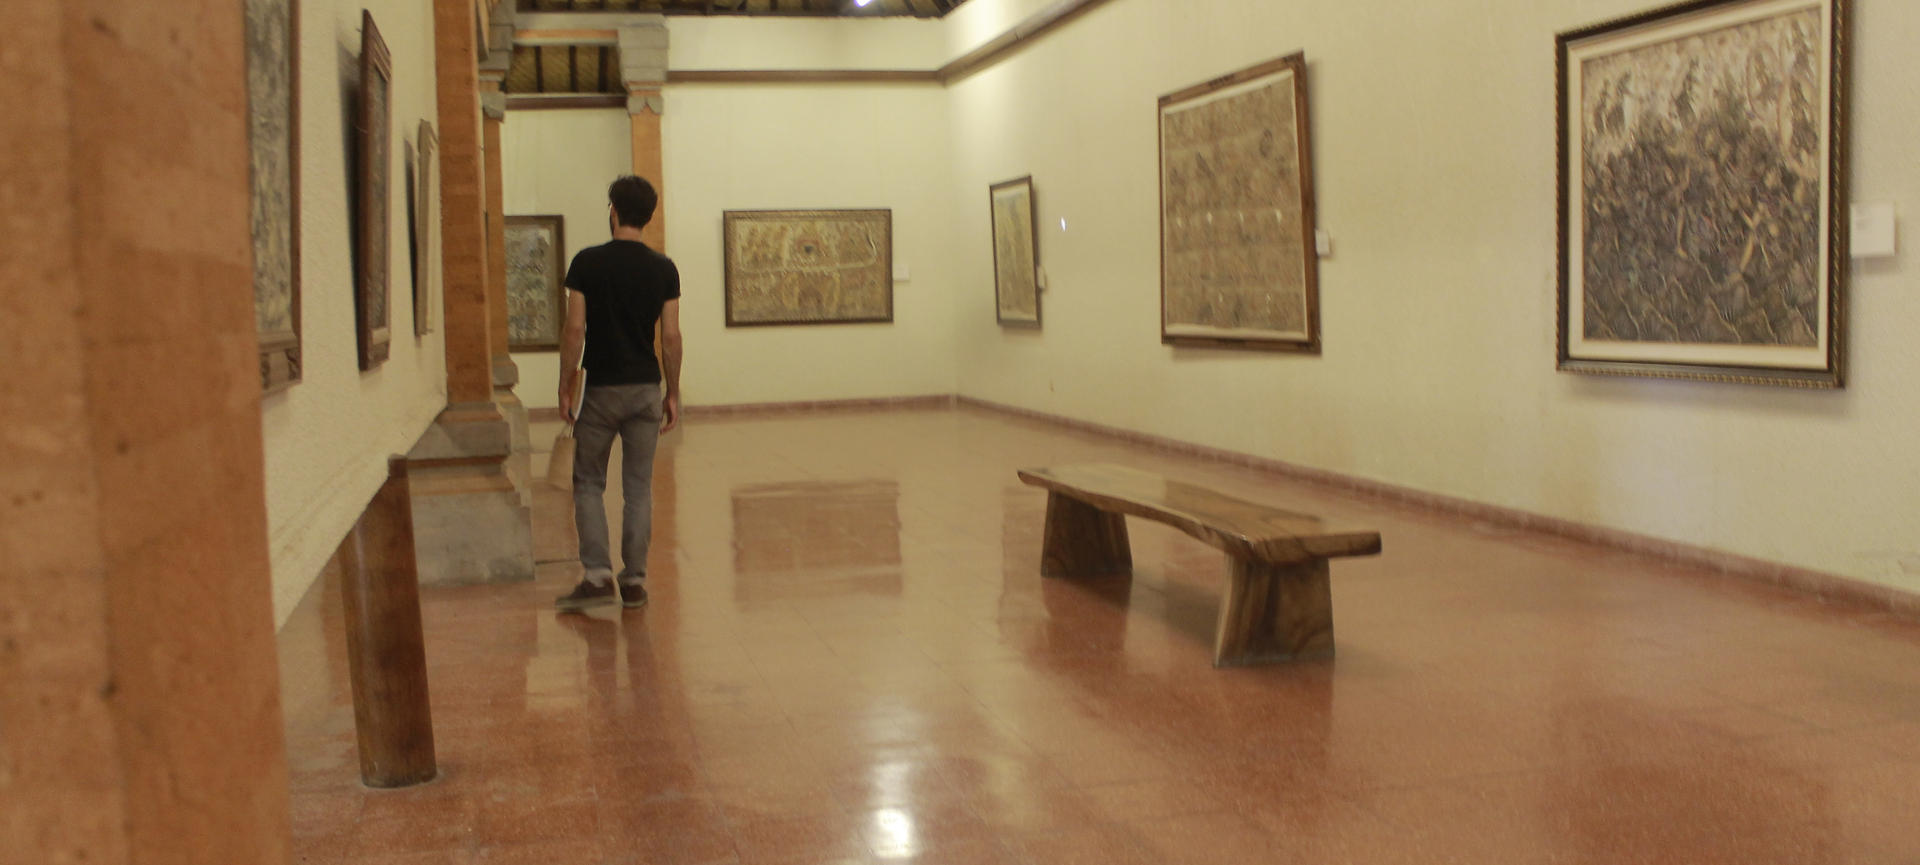 Explore The Art And Culture Of Bali At Puri Lukisan Museum, Ubud